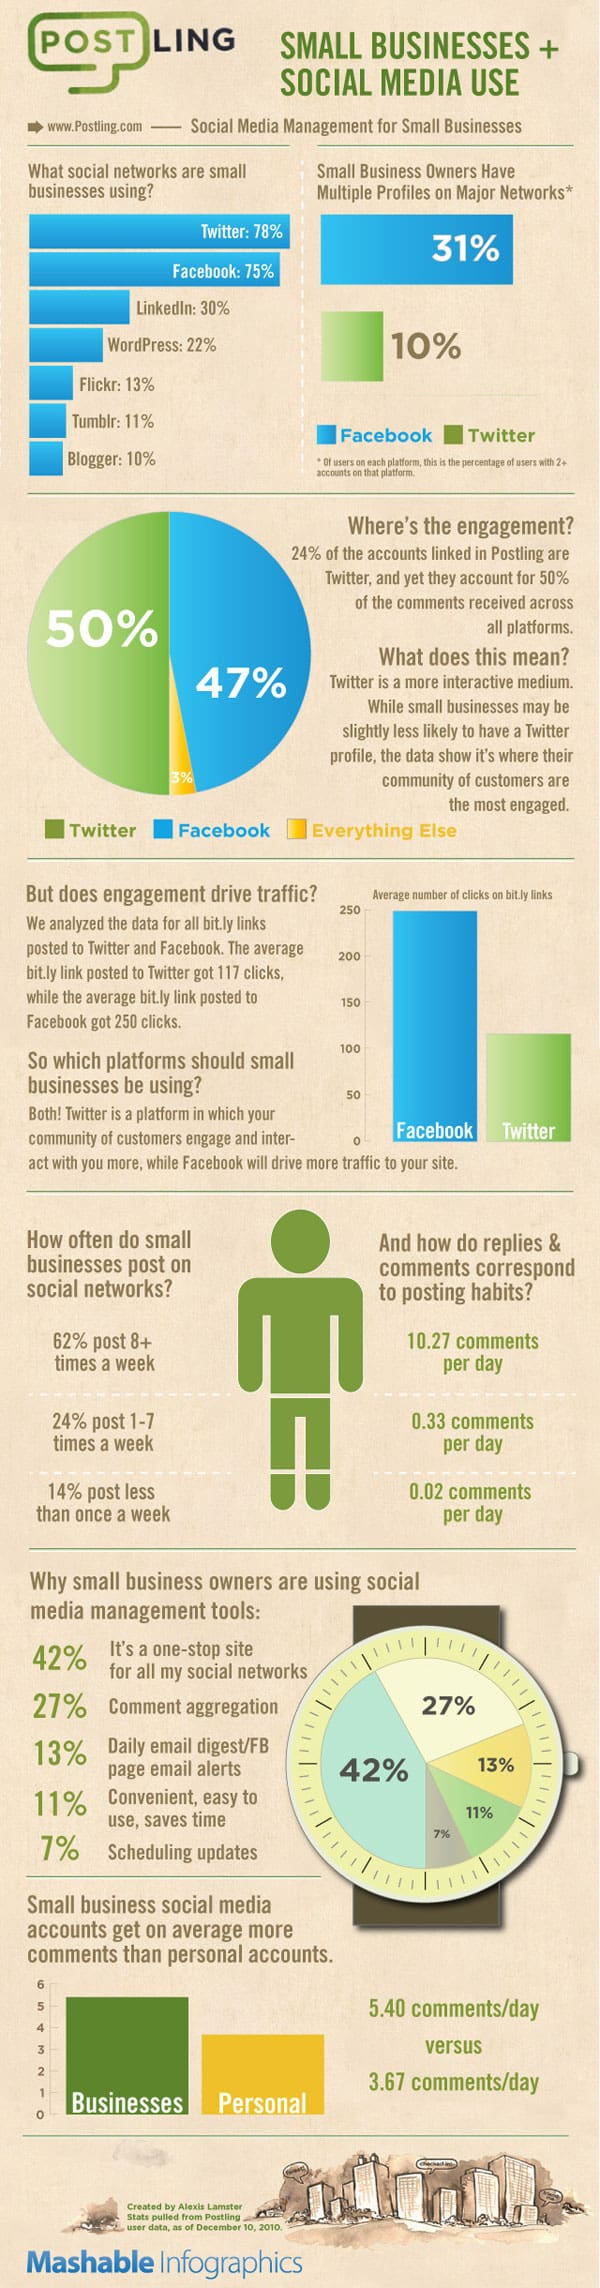 Small businesses and social media use